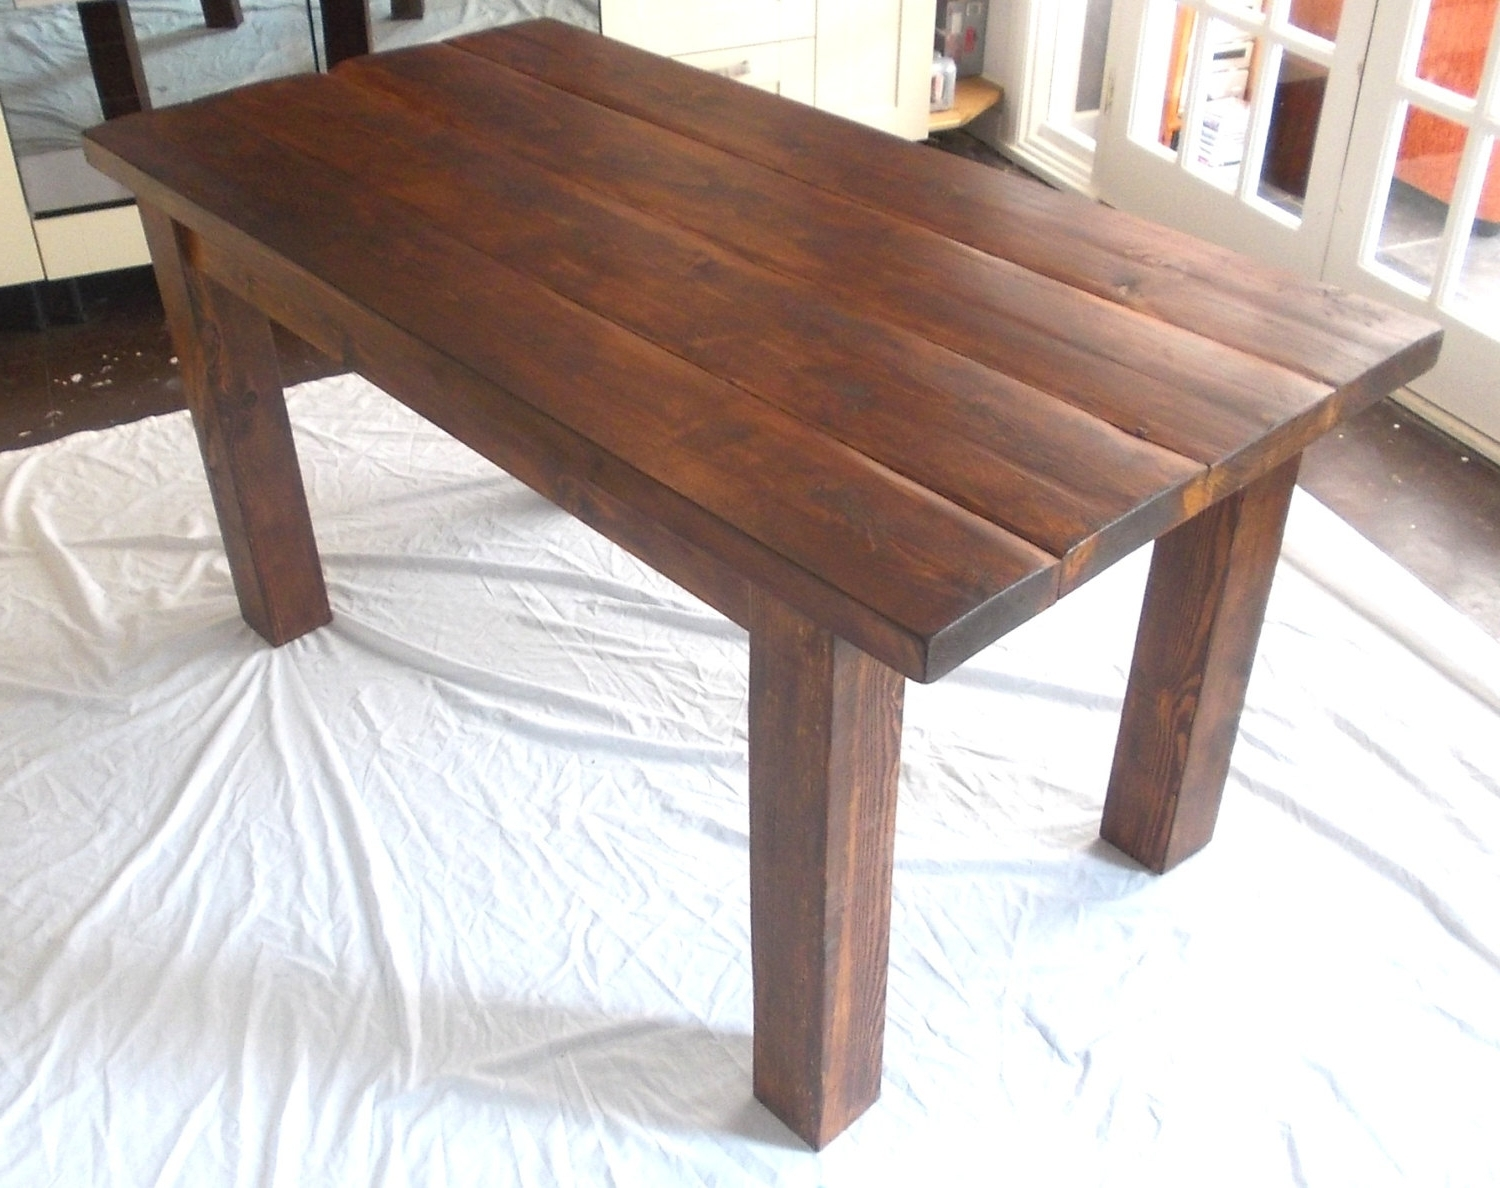 2017 Solid Dark Wood Dining Tables Pertaining To Rustic Solid Wood Plank Kitchen Dining Table Stained In Dark Black (Gallery 22 of 25)